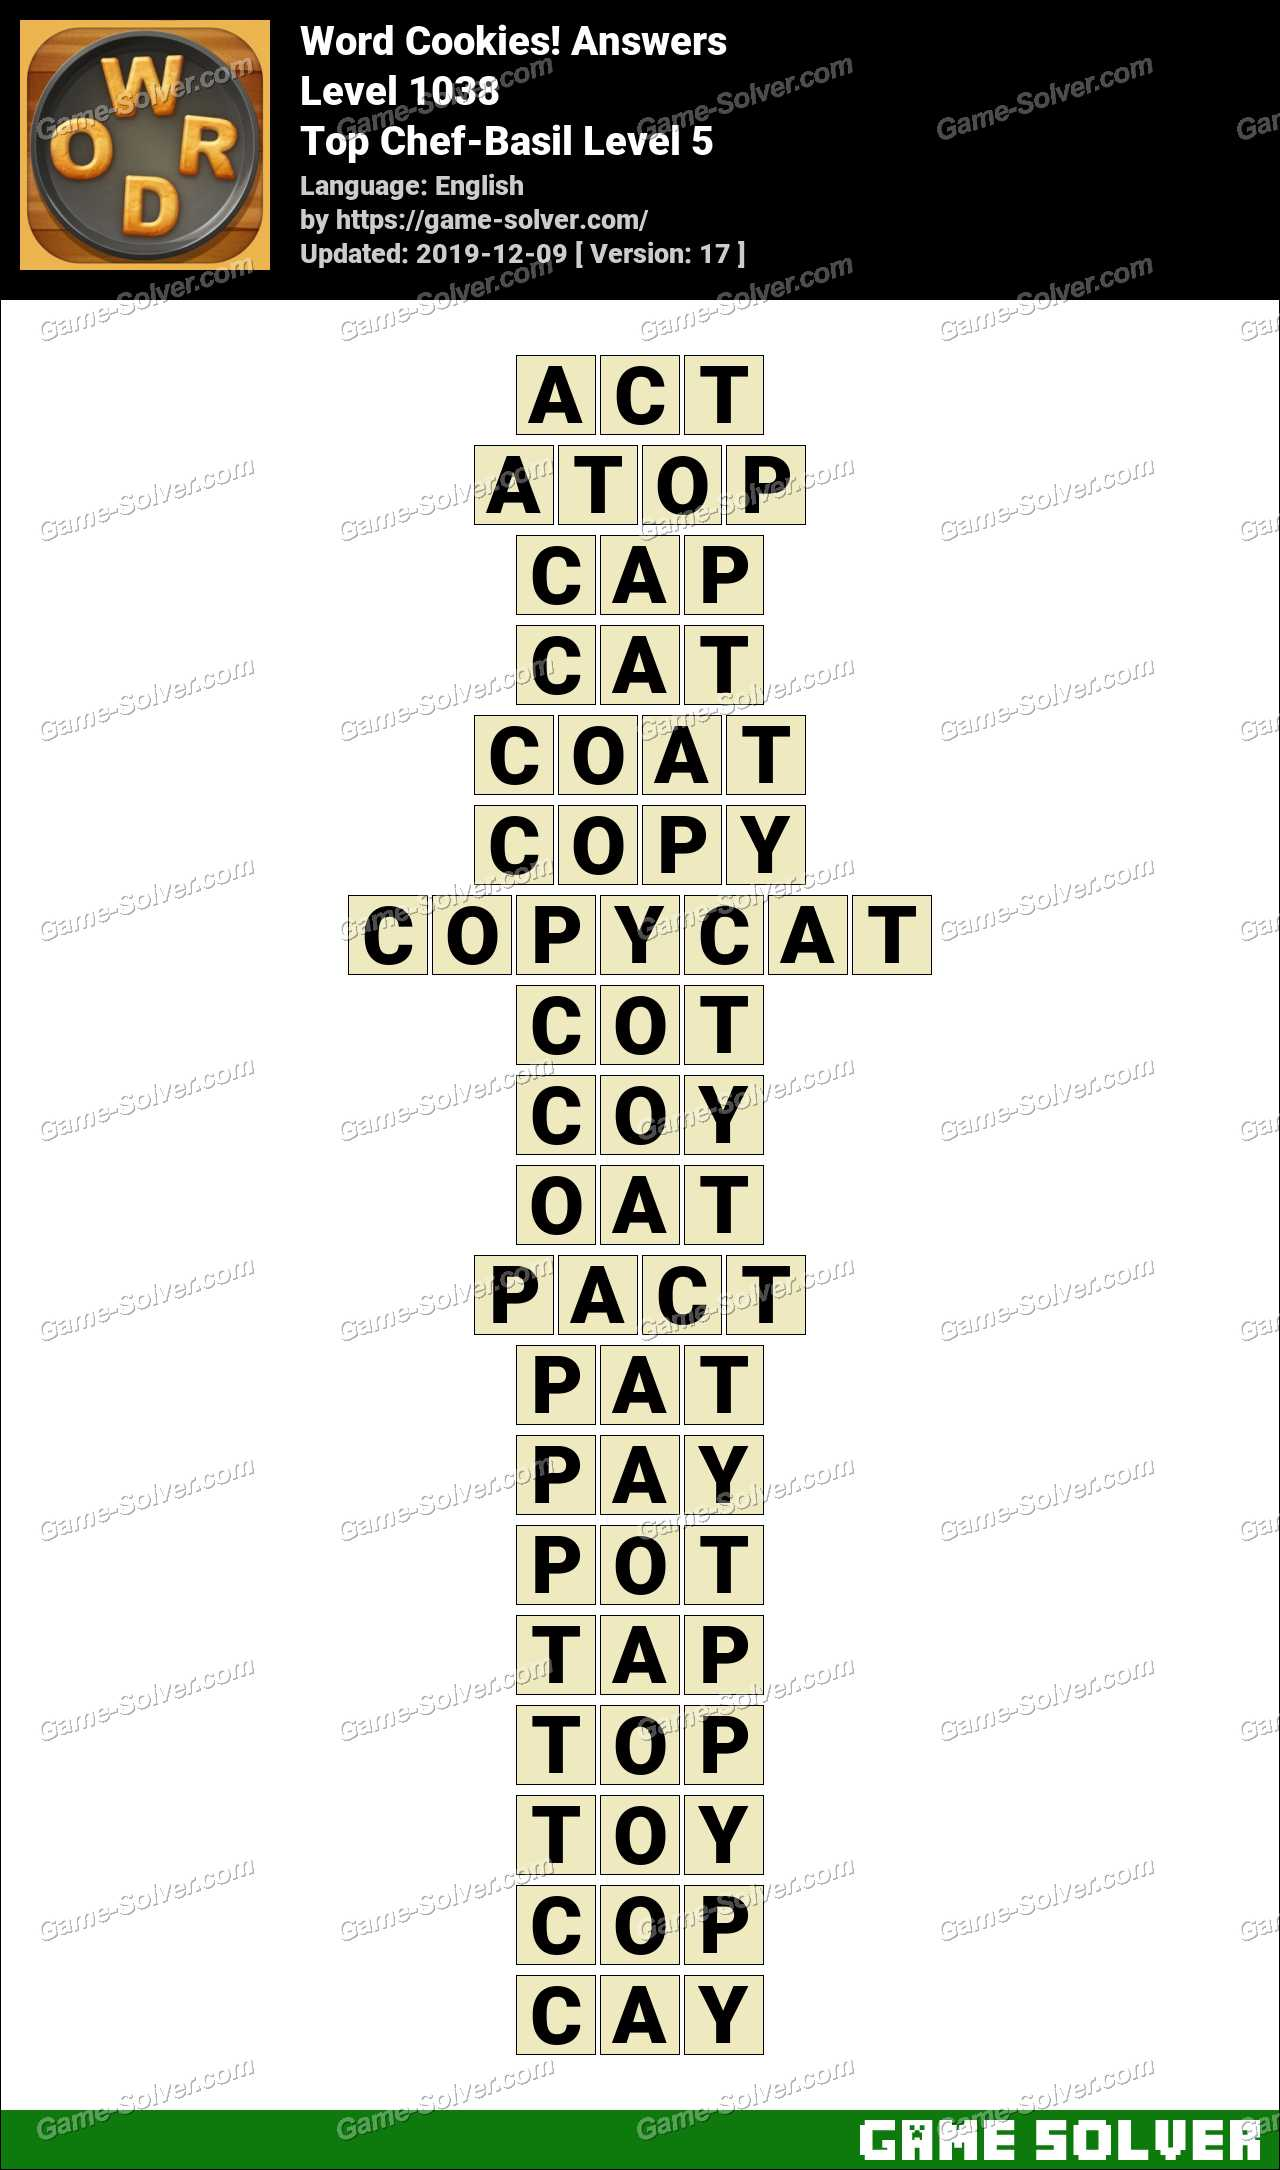 Word Cookies Top Chef-Basil Level 5 Answers